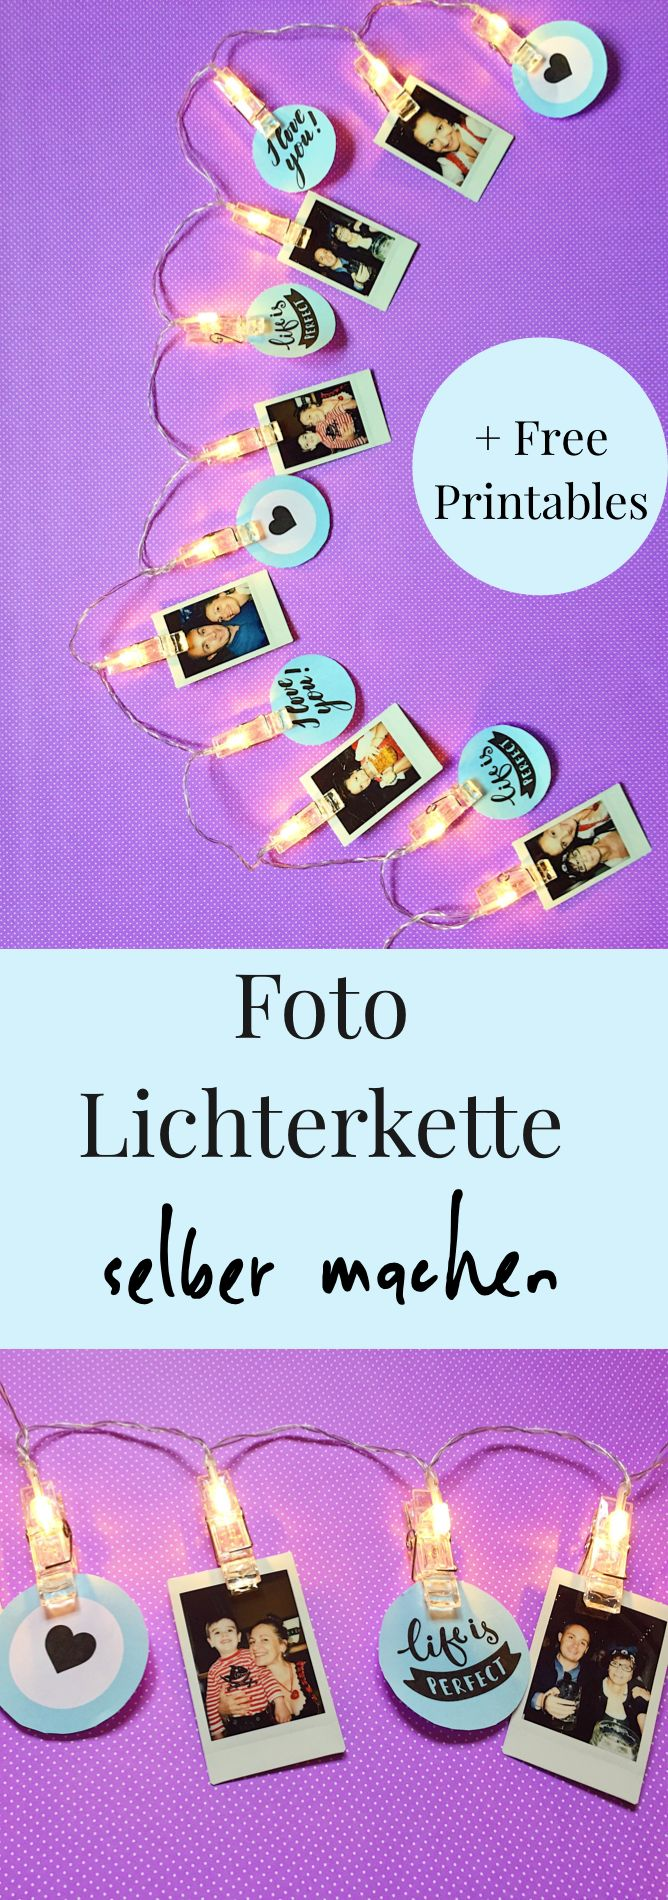 Make your own fairy lights - make your own personal DIY decoration